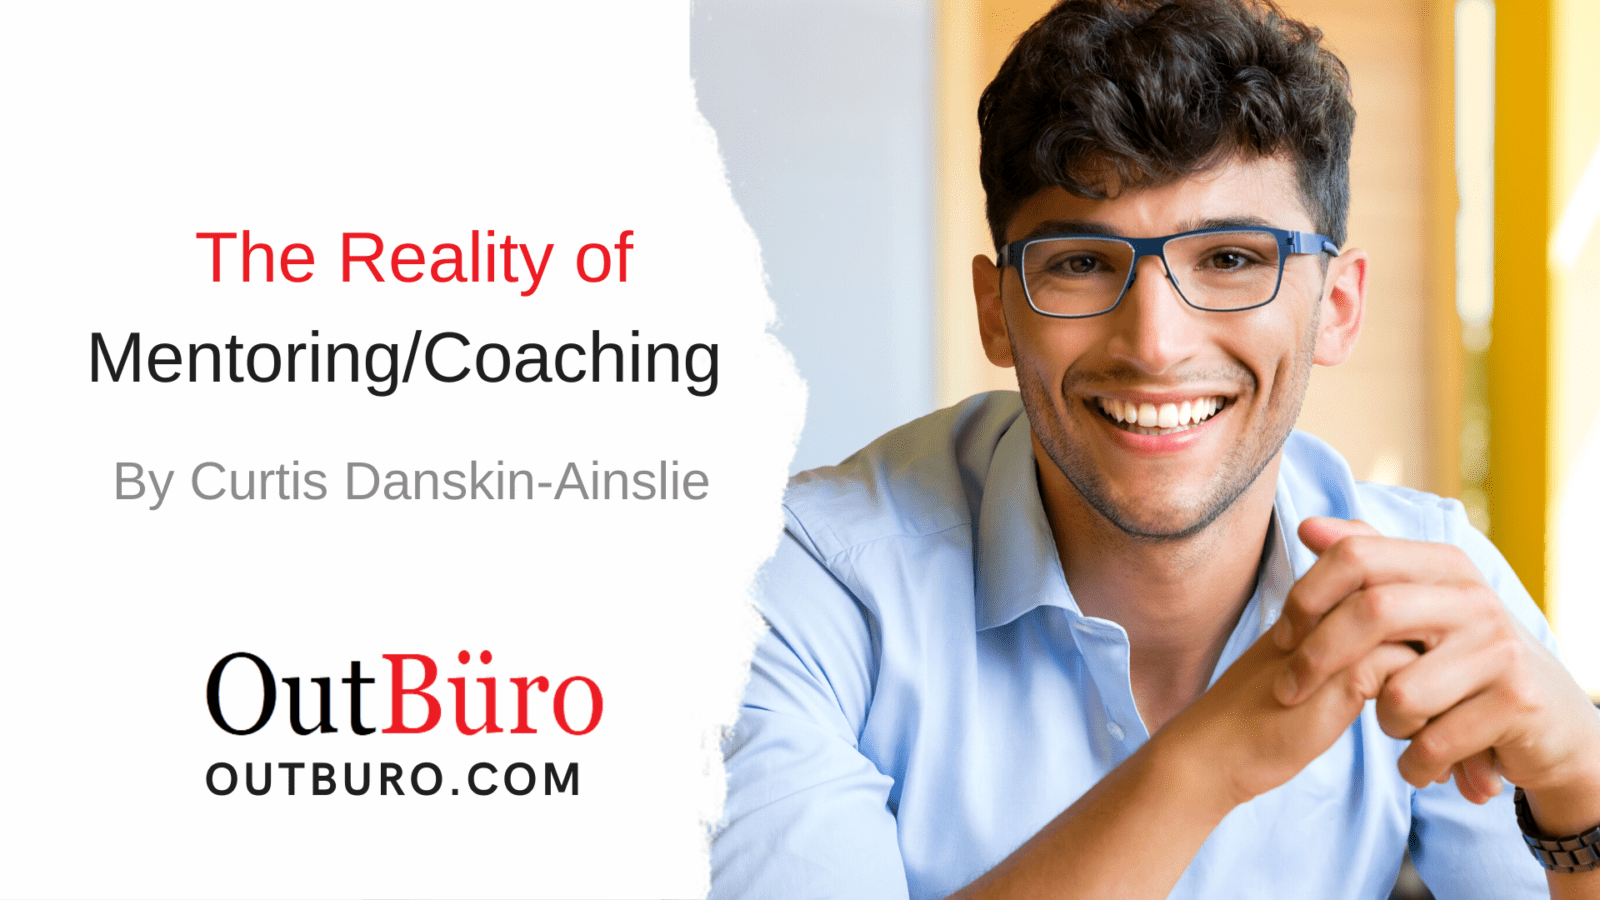 The Reality of Mentoring Coaching lgbtq entrpreneurs startup professionals business owners careers outburo